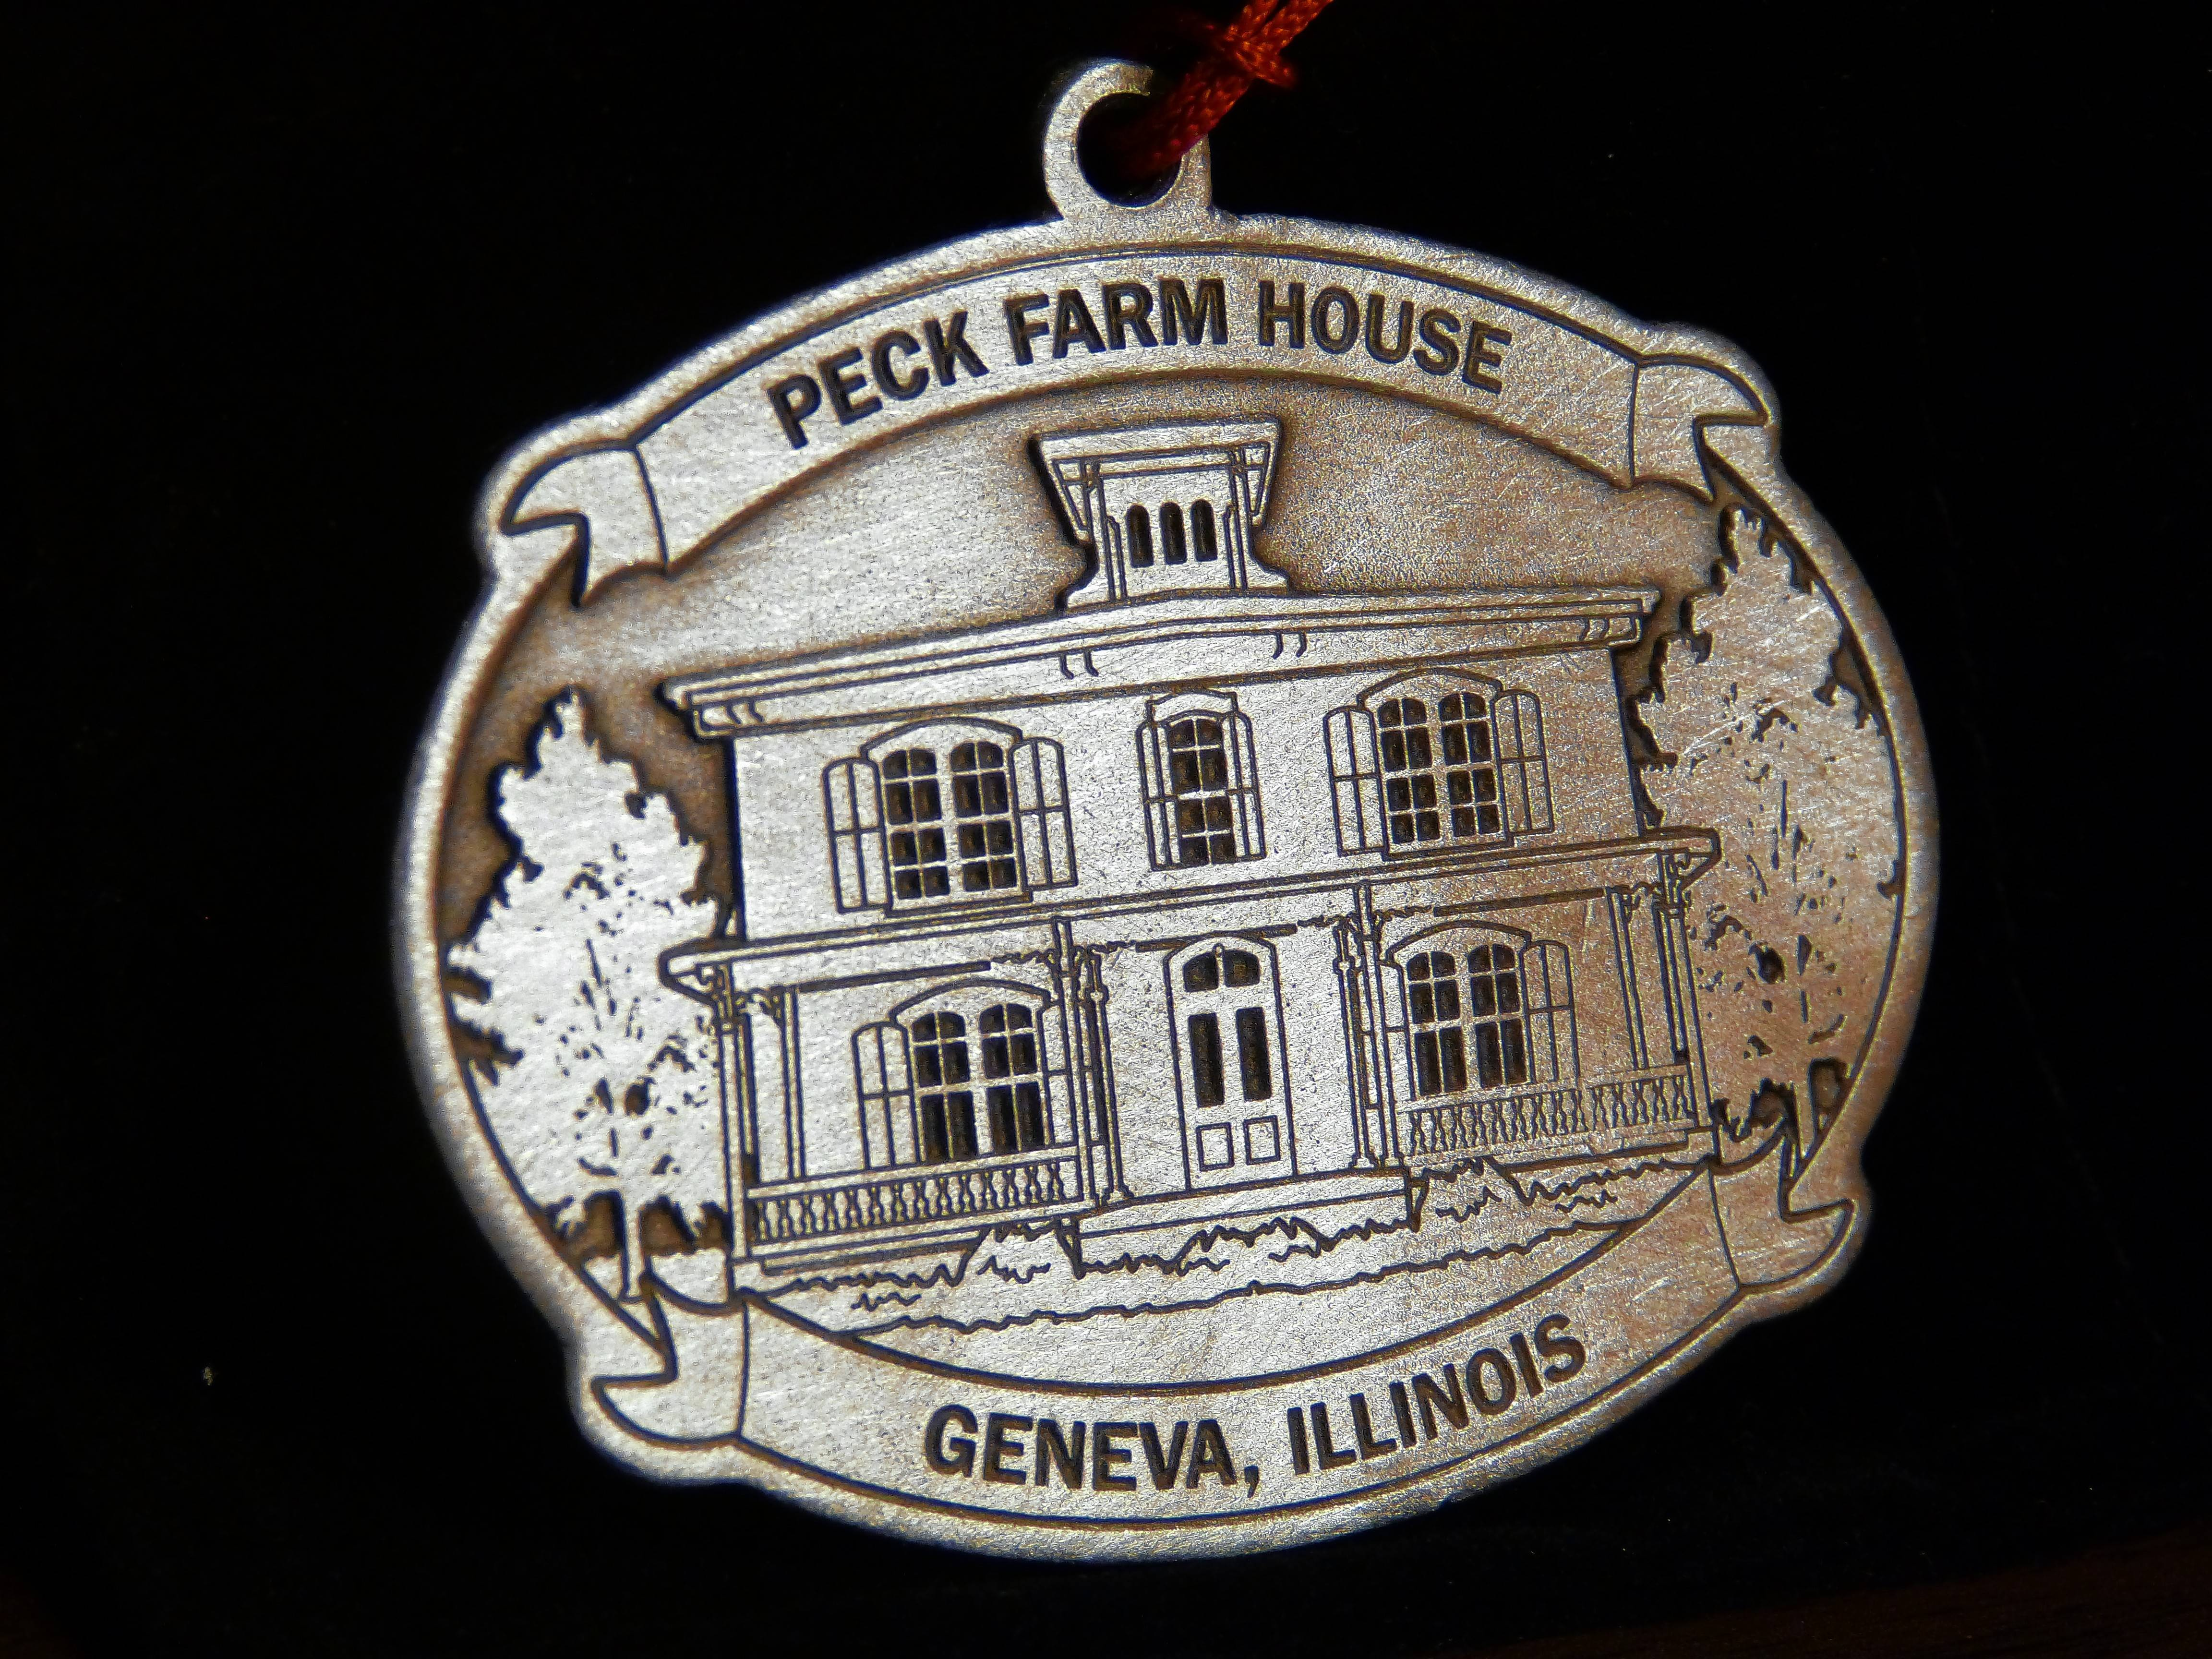 City of Geneva's 2017 ornament to feature Peck Farm House.